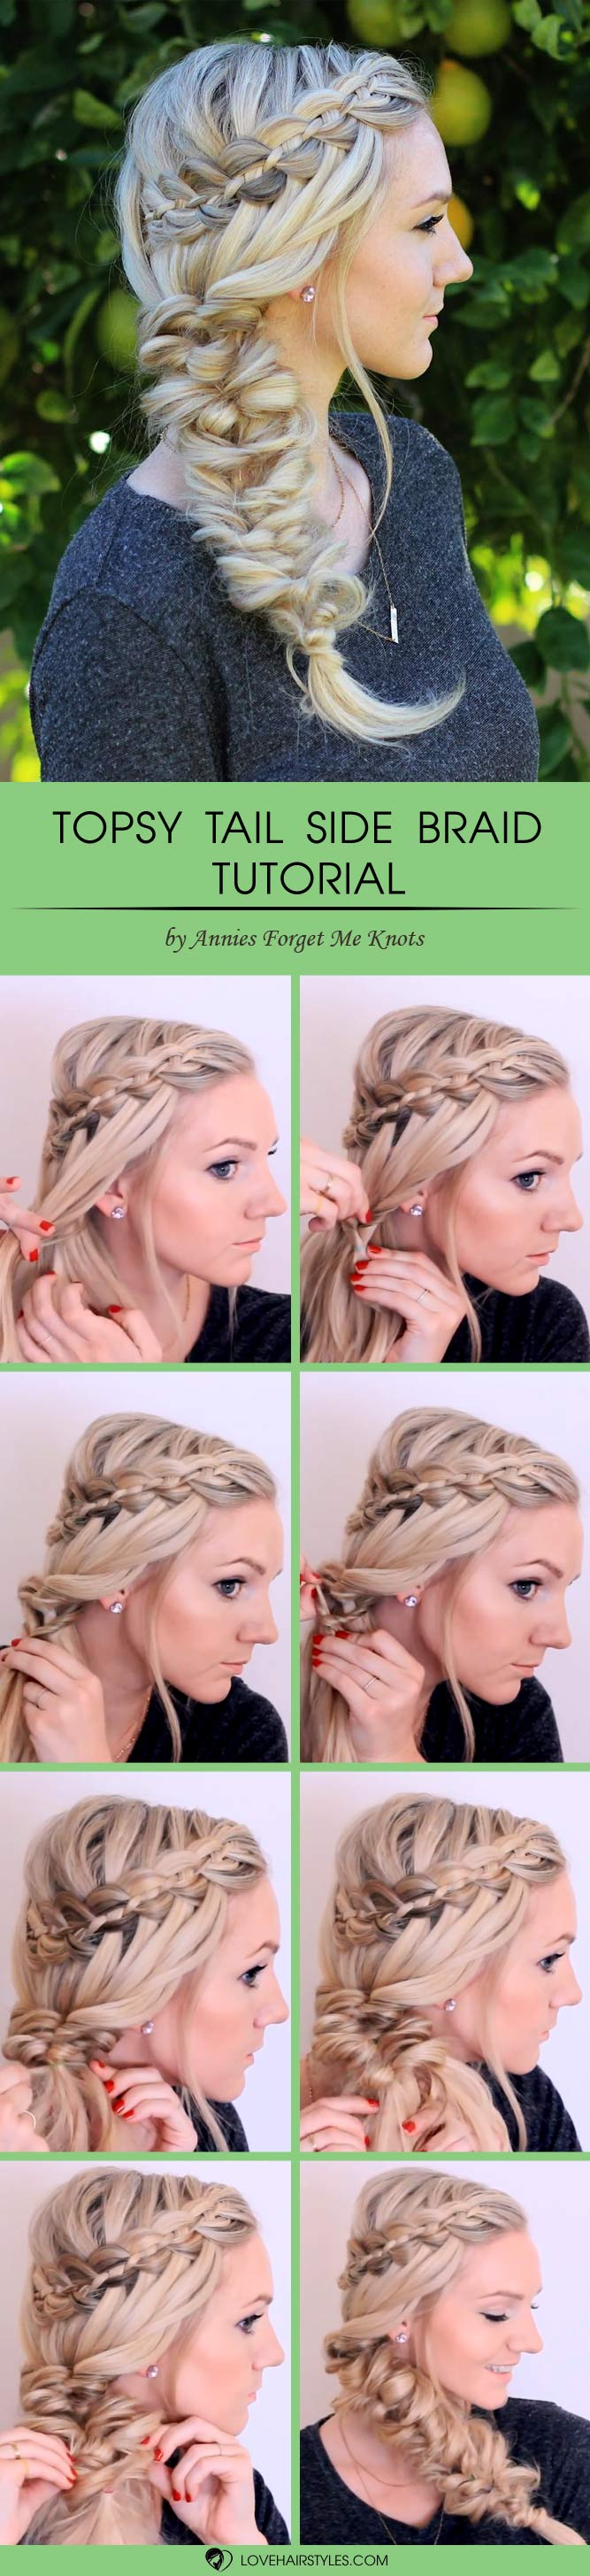 Topsy Tail Side Braid #topsytail #tutorials #hairstyles